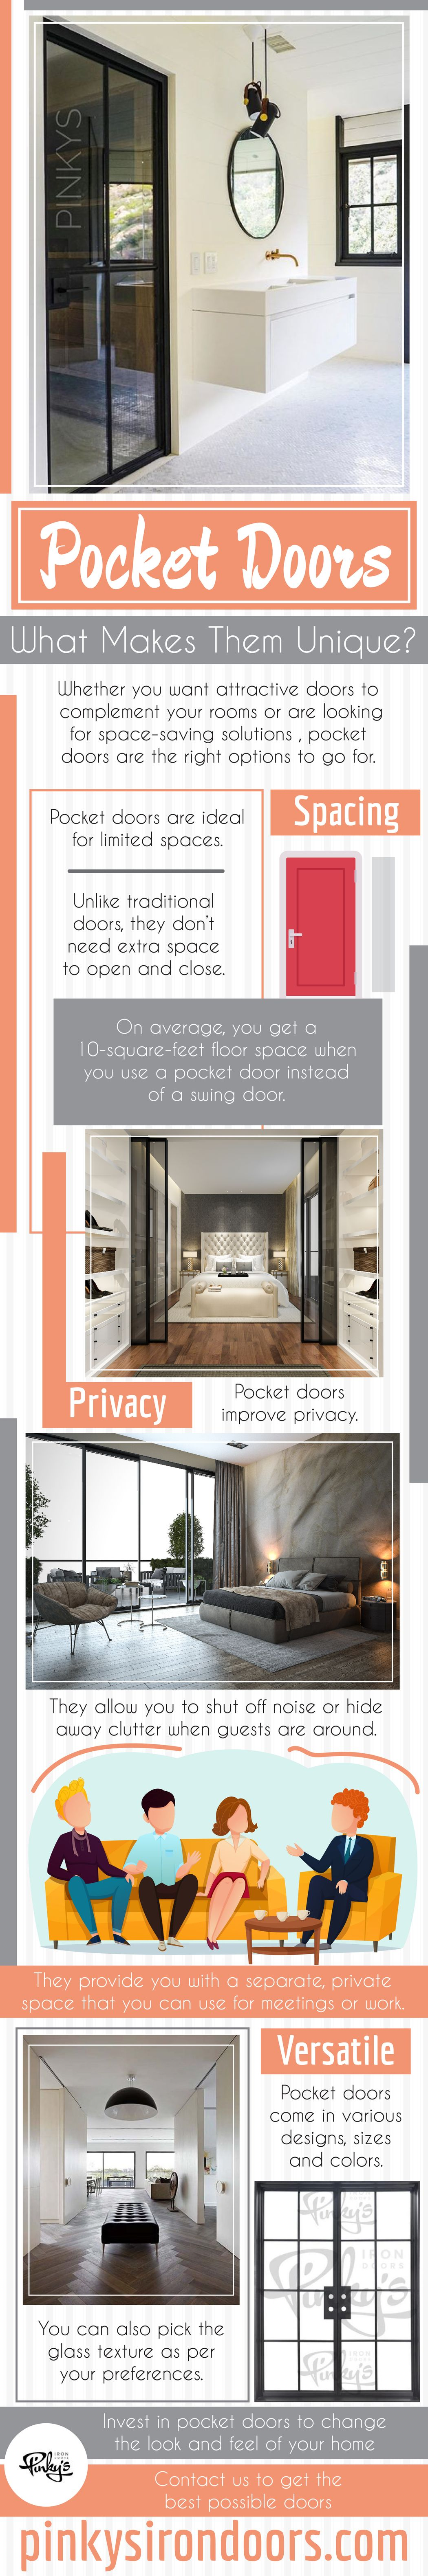 Pocket Doors: What Makes Them Unique?